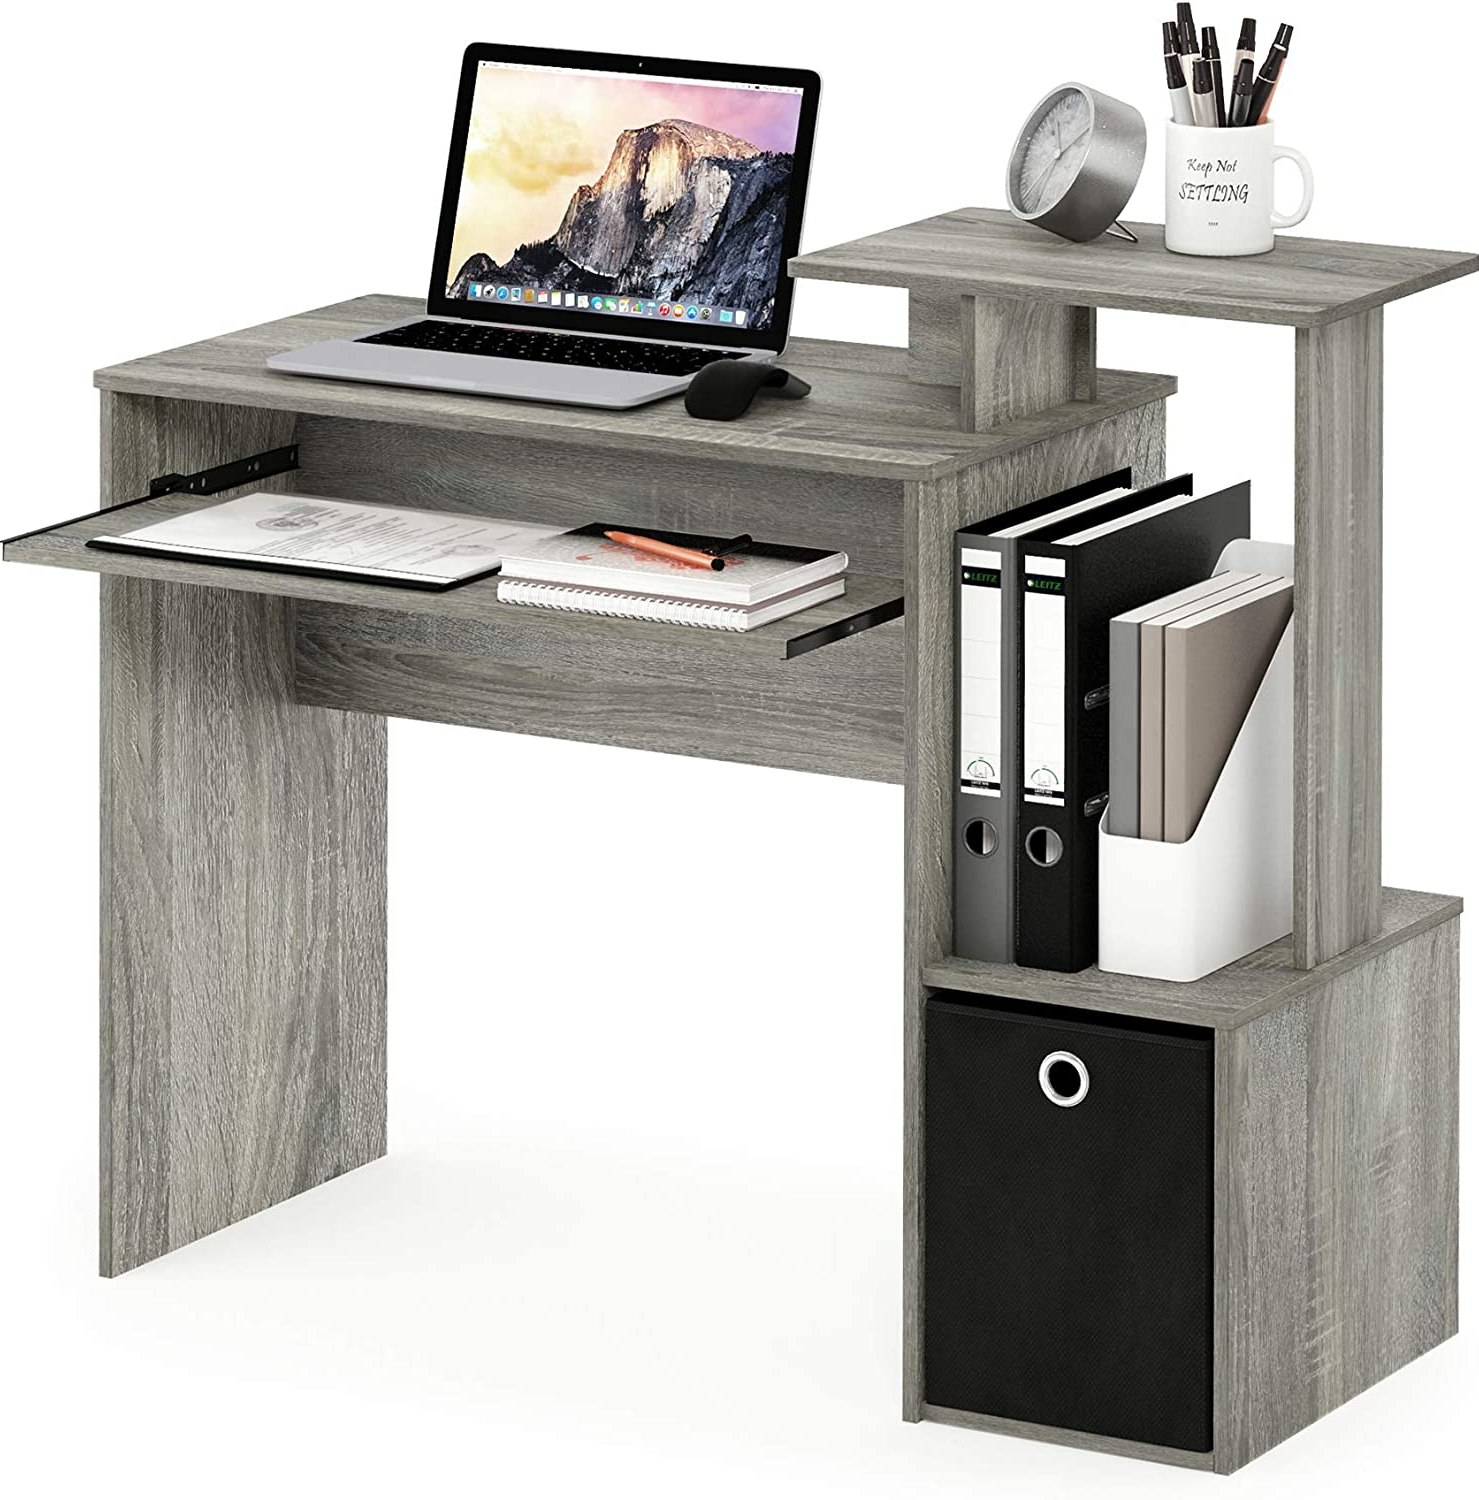 Cheap Computer Desks Under $100